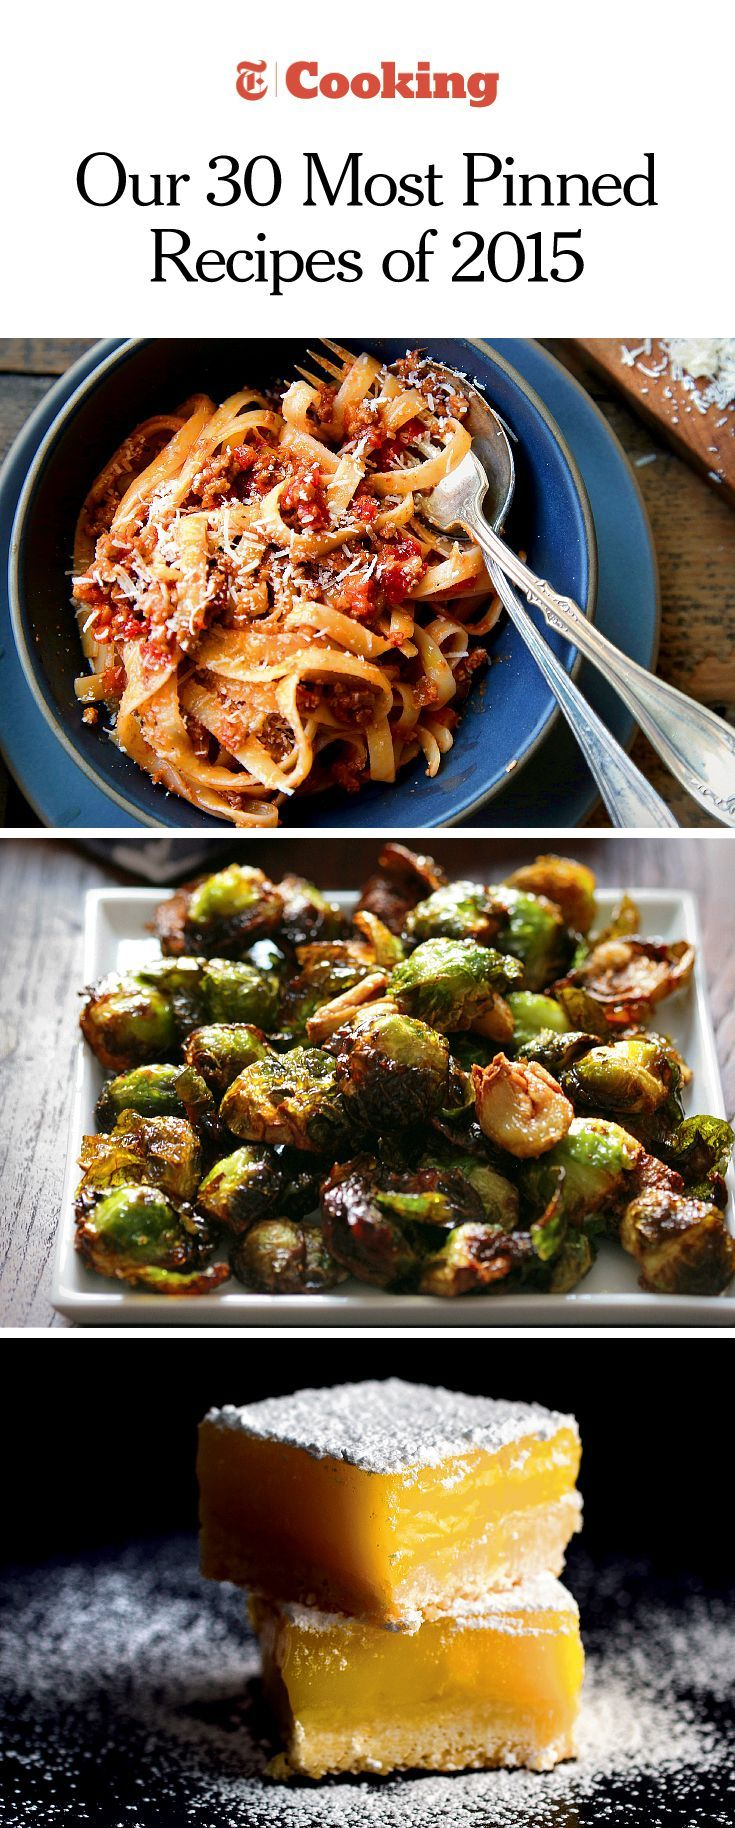 The recipes Pinterest users saved most from http://NYTCooking.com, including Marcella Hazan's Bolognese, roasted Brussels sprouts with garlic and lemon bars. (Photos, from top: Jim Wilson/NYT and Andrew Scrivani for NYT)